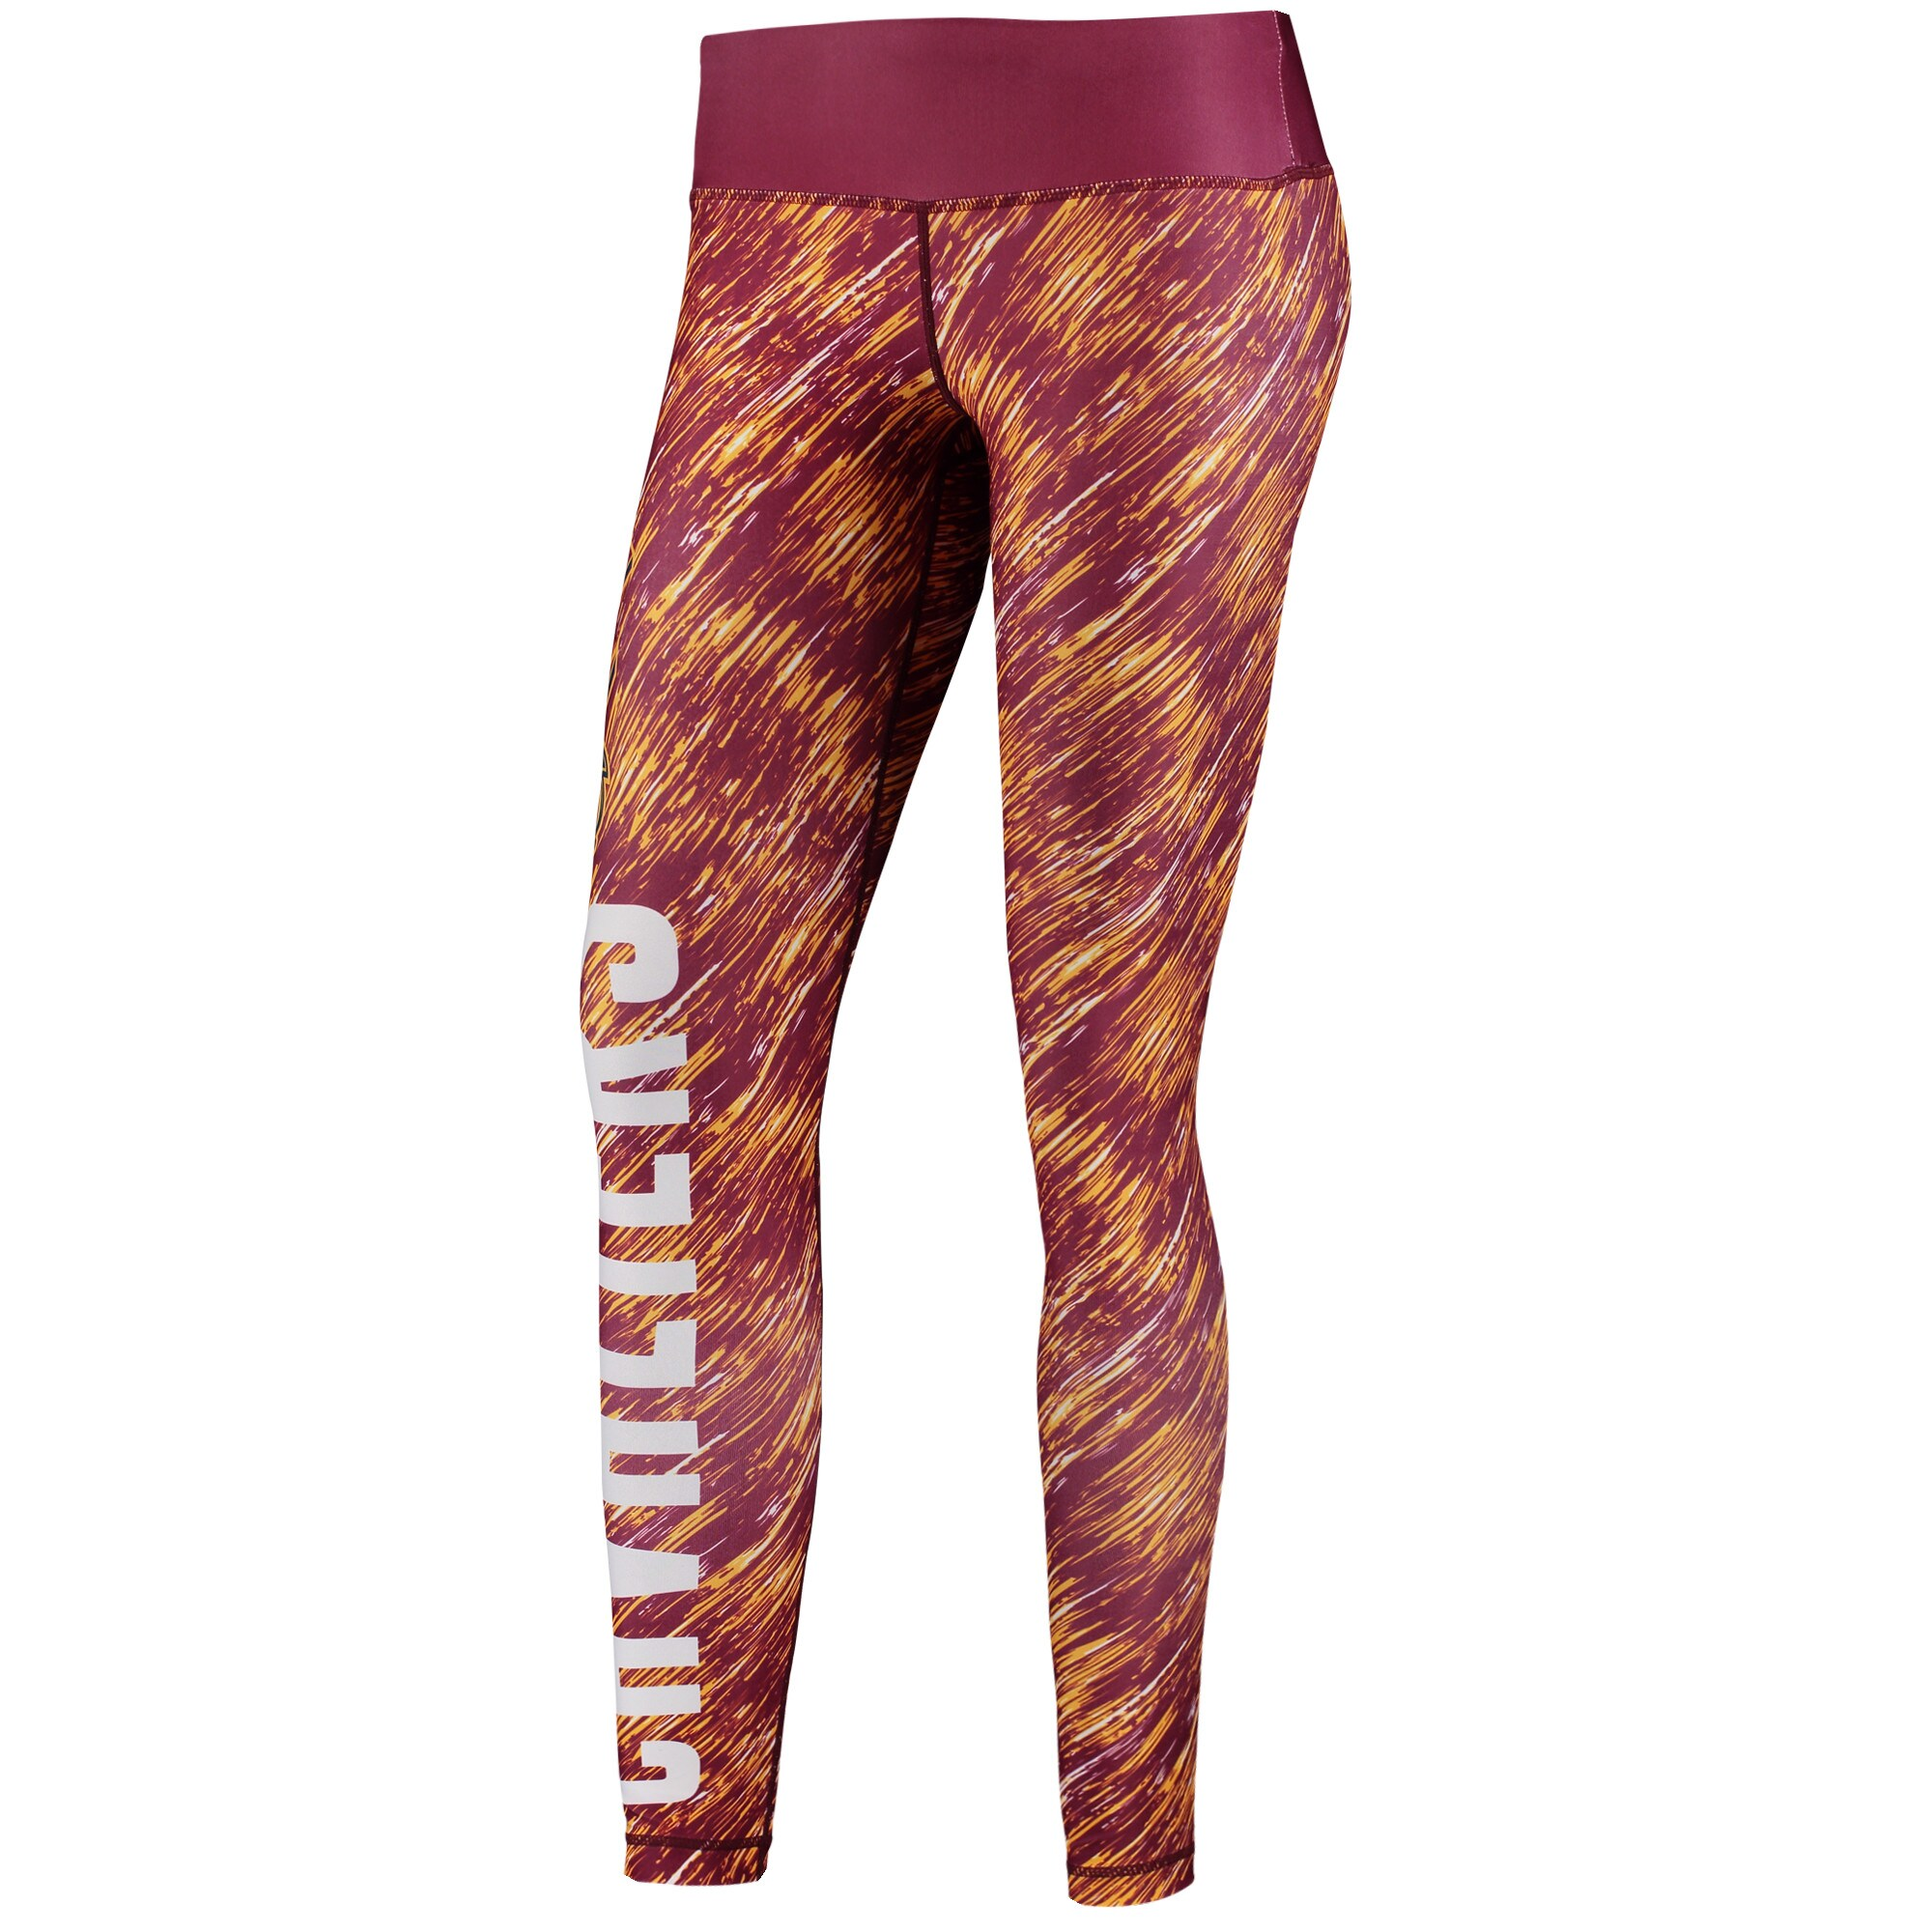 Cleveland Cavaliers Women's Static Rain Leggings - Wine